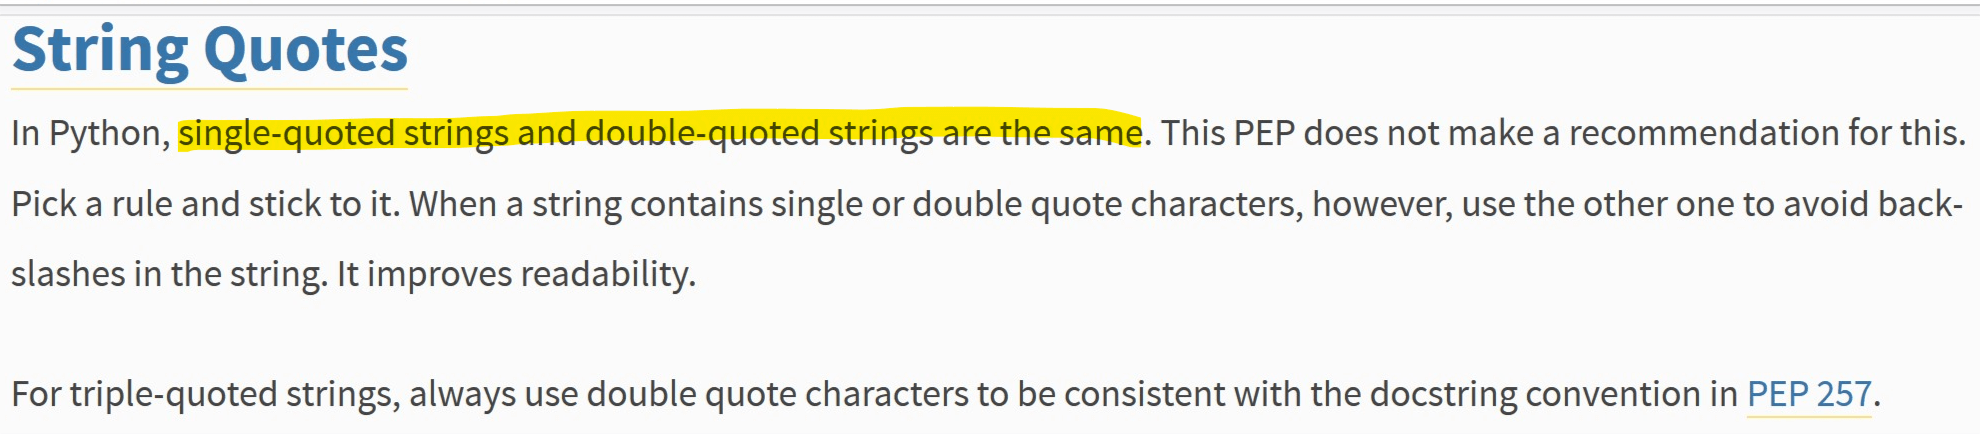 String quotes in PEP8 - GKMNGRGN